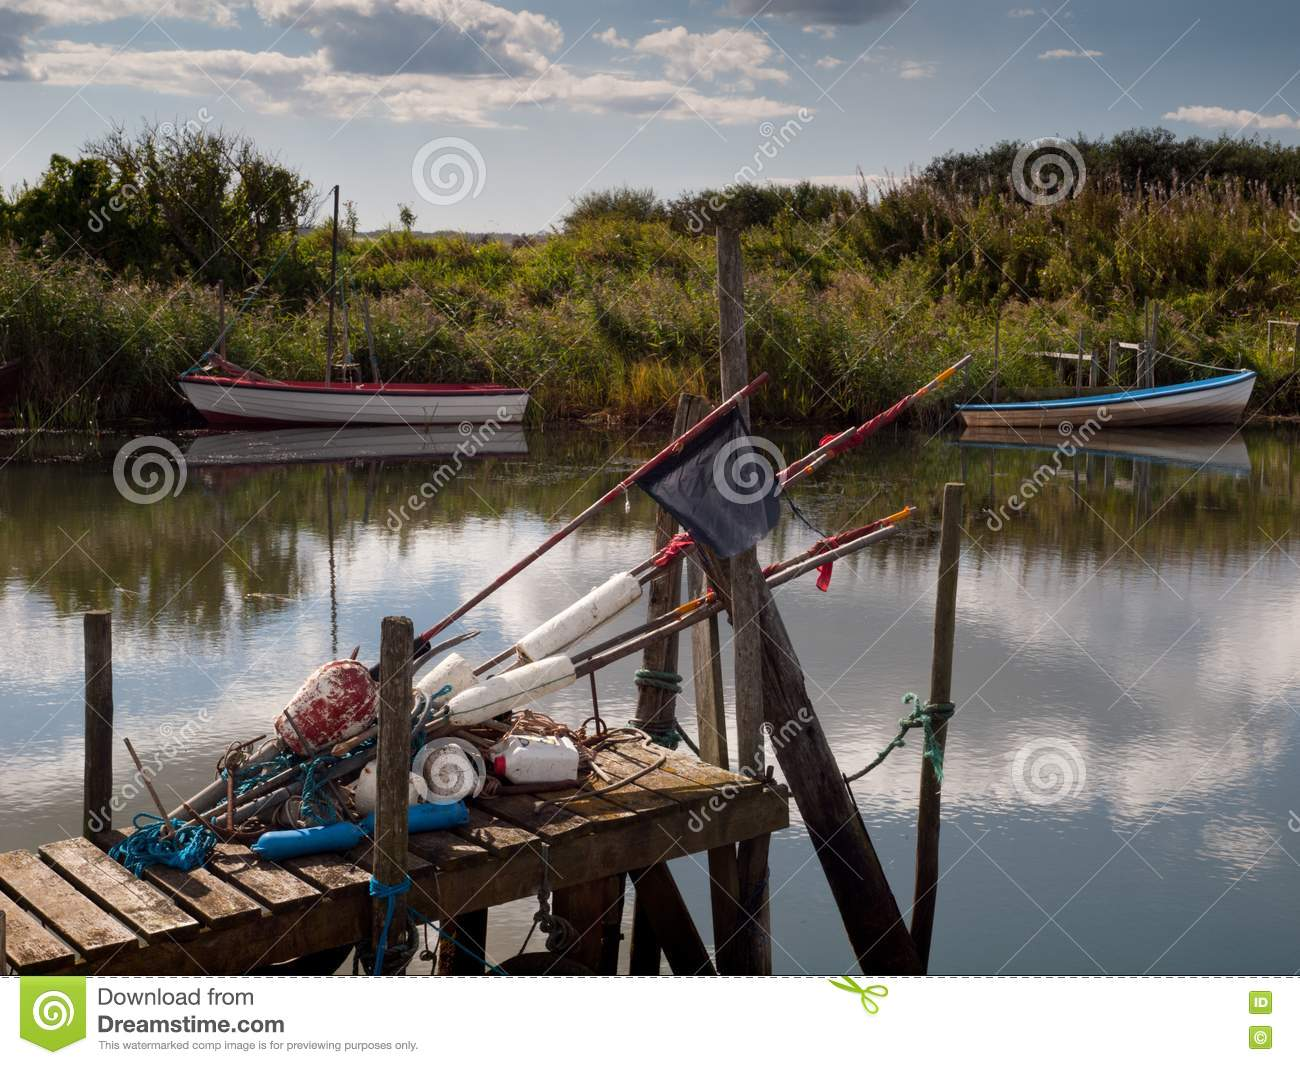 Fishing gear on pier royalty free stock image image for Free fishing stuff